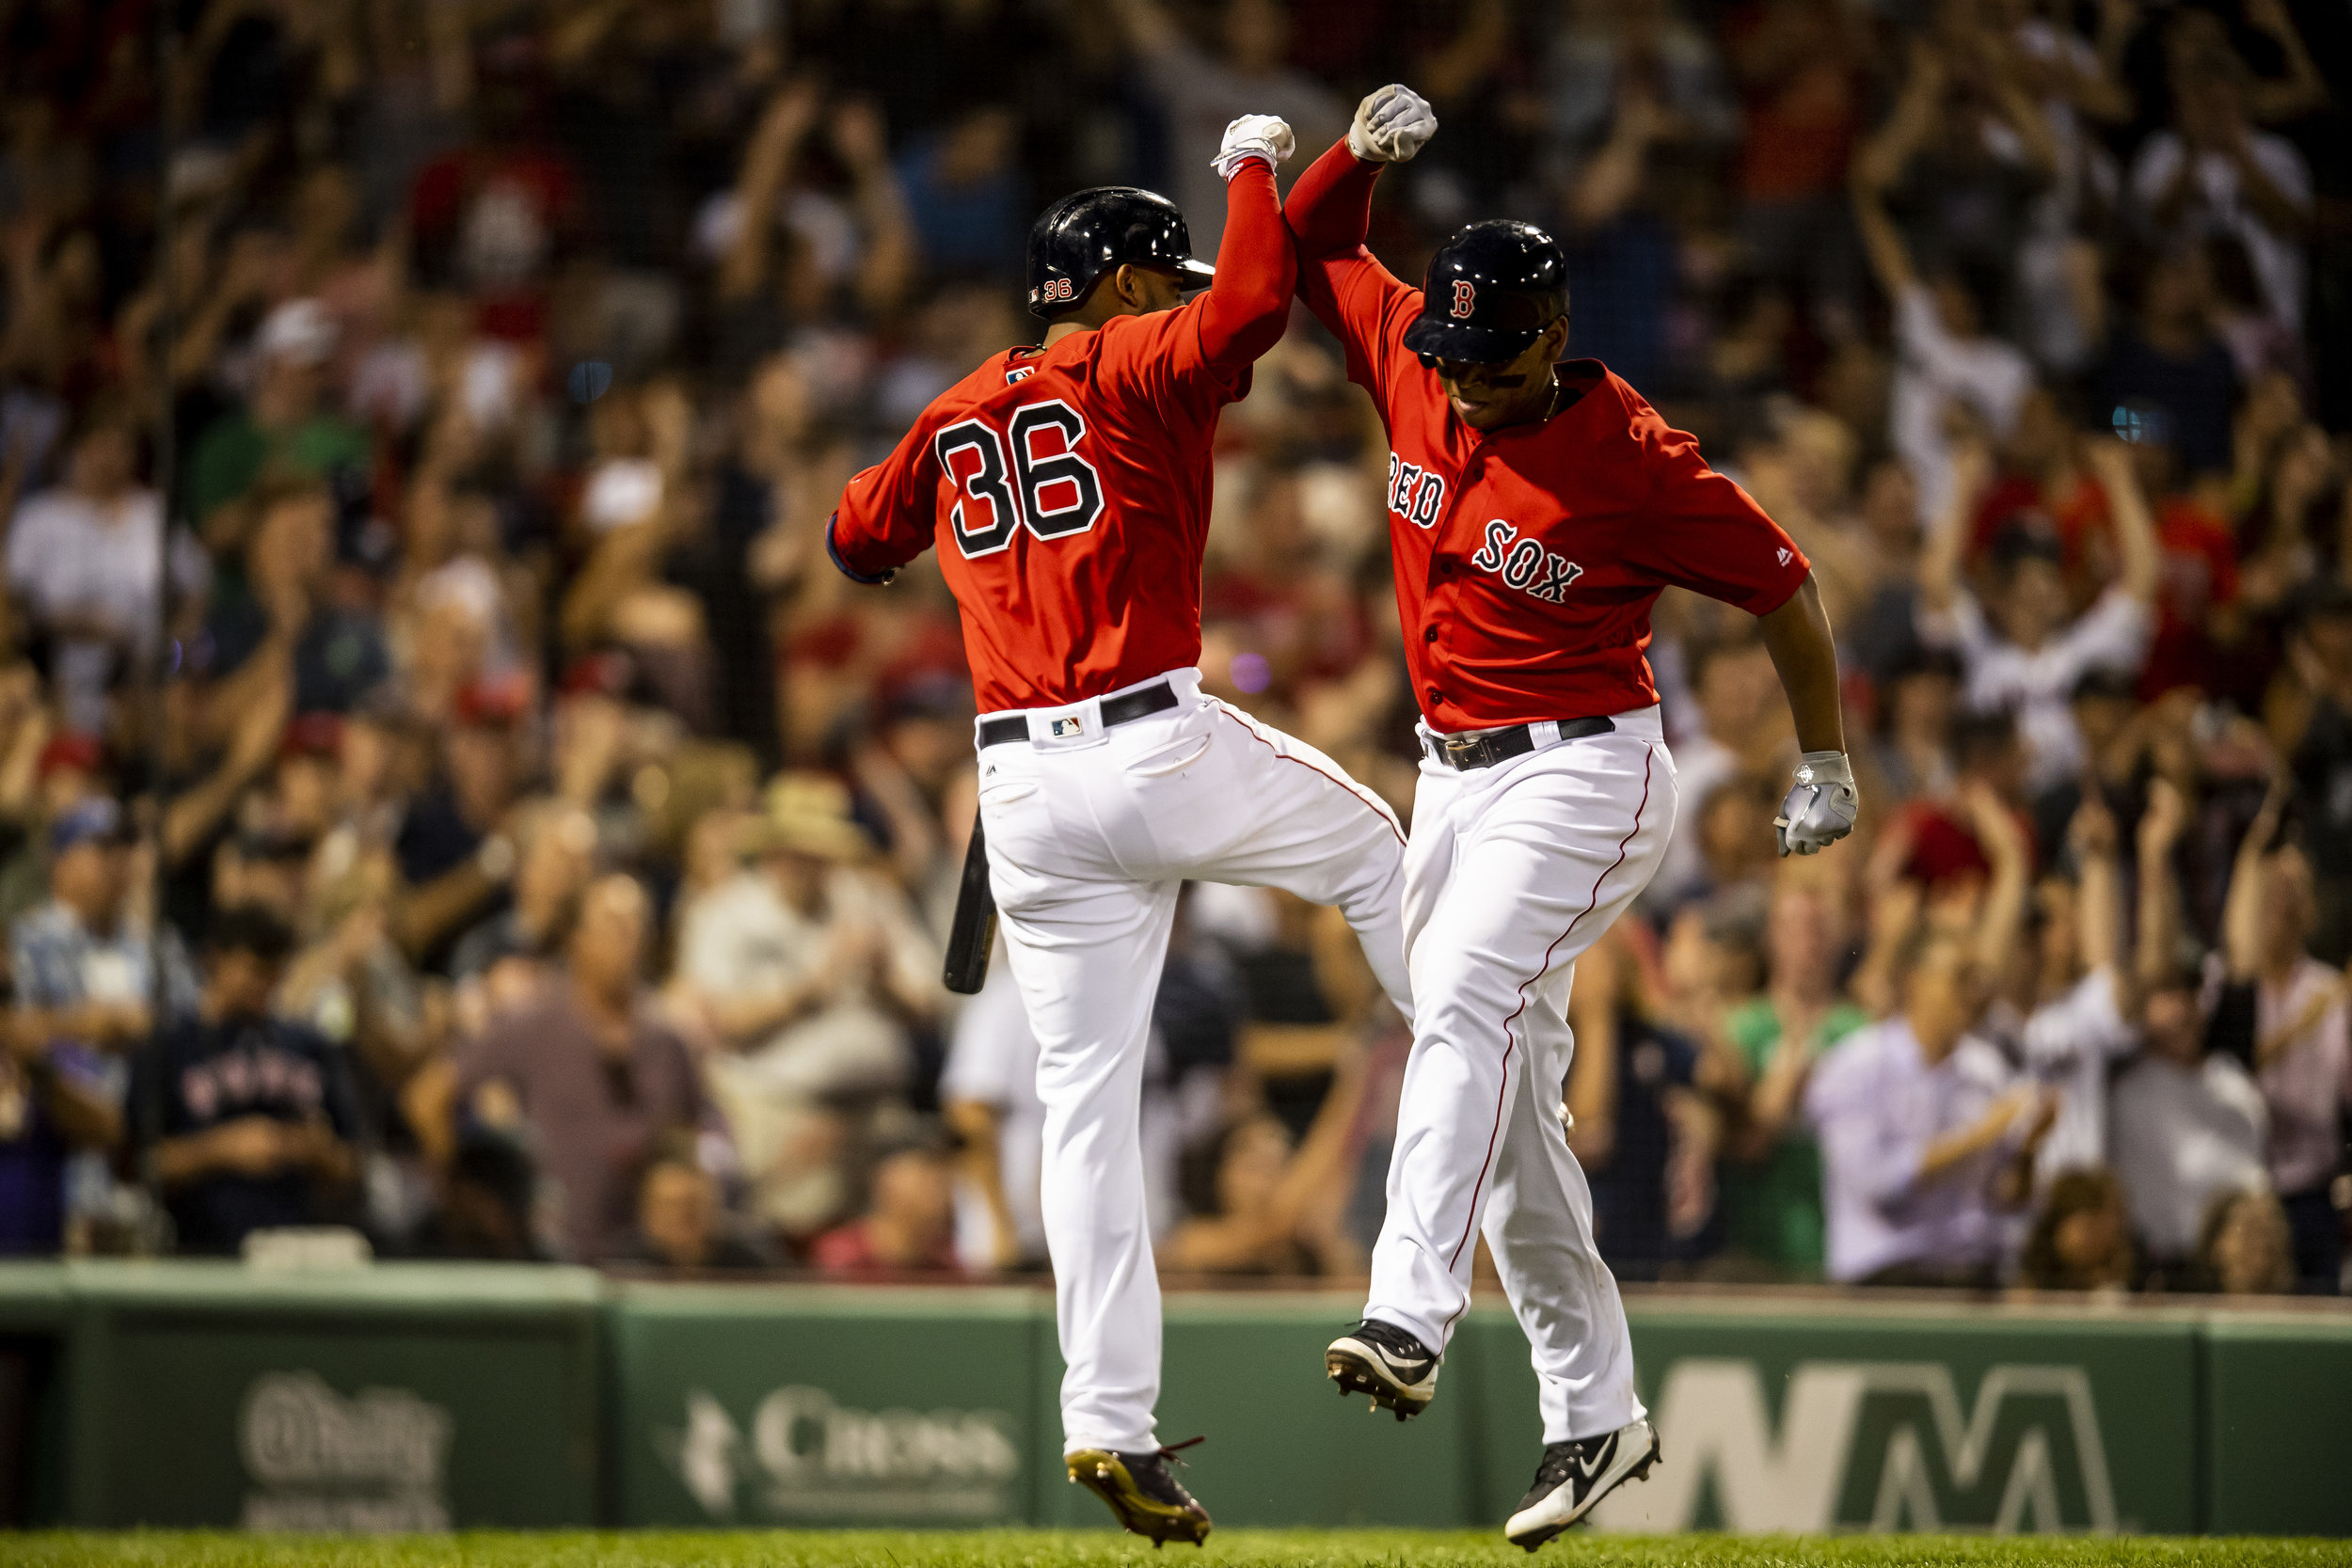 July 26, 2018, Boston, MA: Boston Red Sox third basemen Rafael Devers and Boston Red Sox second basemen Eduardo Nunez celebrate Devers home run as the Boston Red Sox face the Minnesota Twins at Fenway Park in Boston, Massachusetts on Friday, July 27, 2018. (Photo by Matthew Thomas/Boston Red Sox)